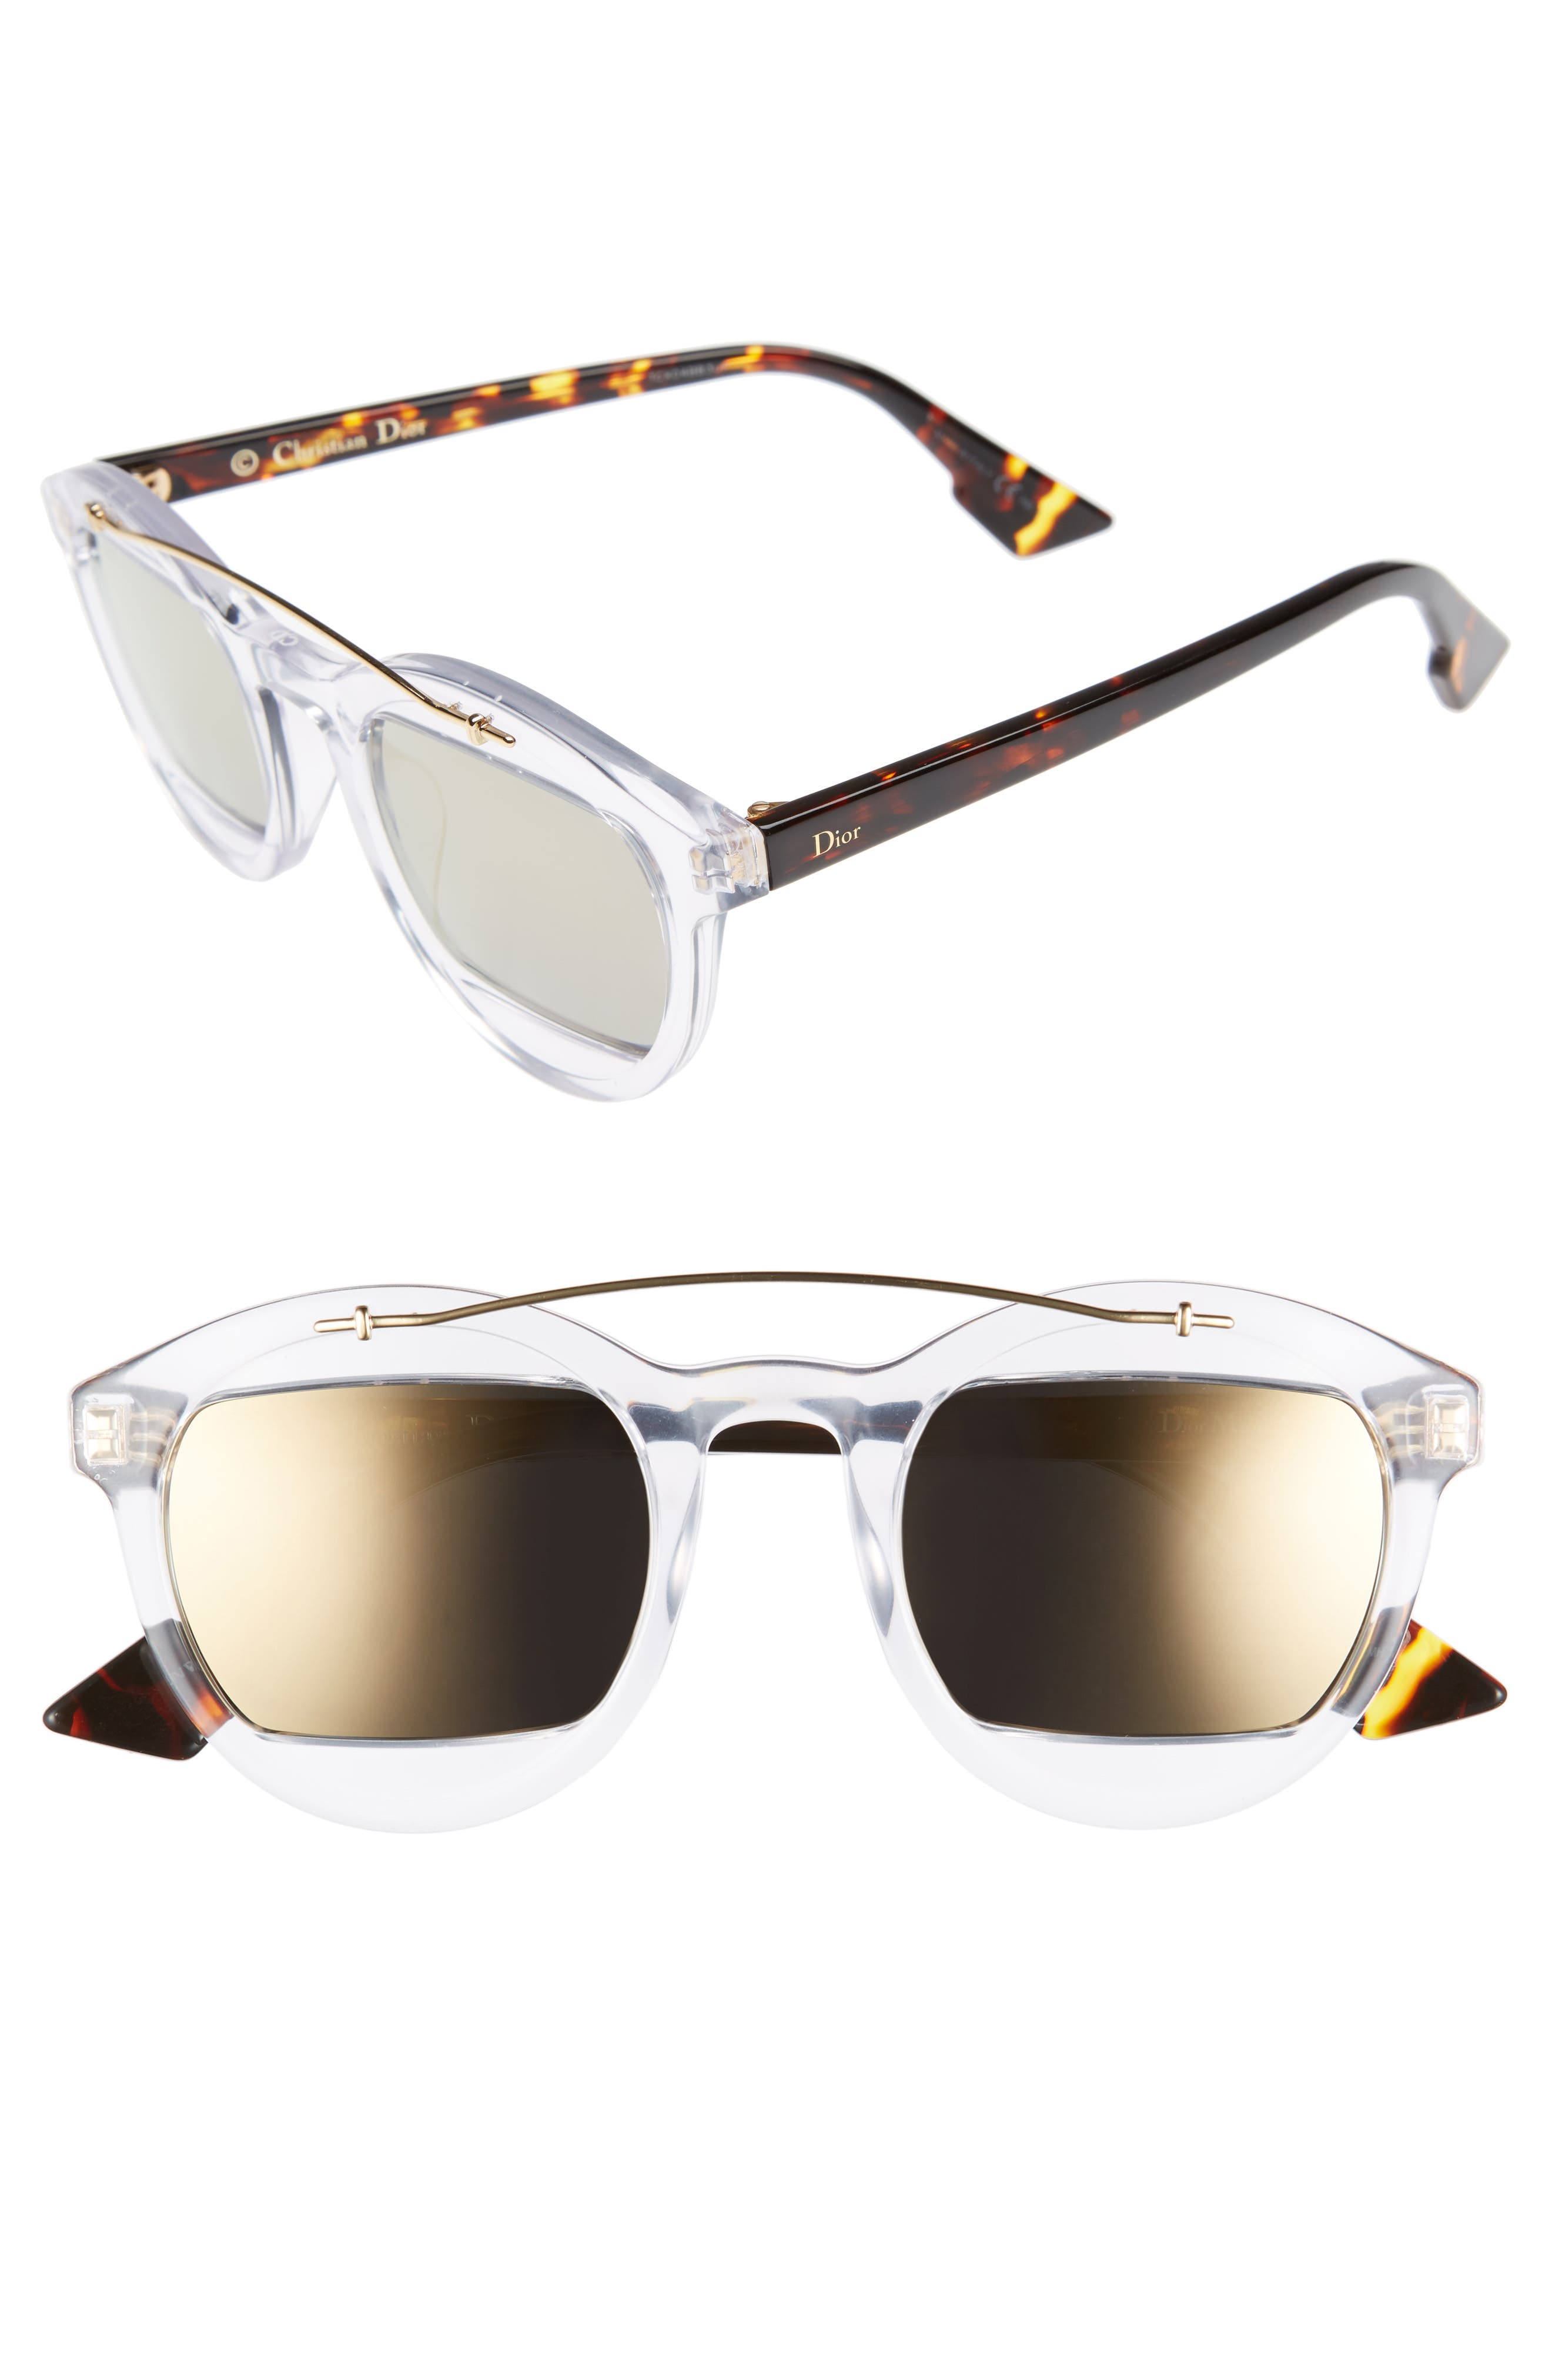 Main Image - Dior Mania 50mm Sunglasses